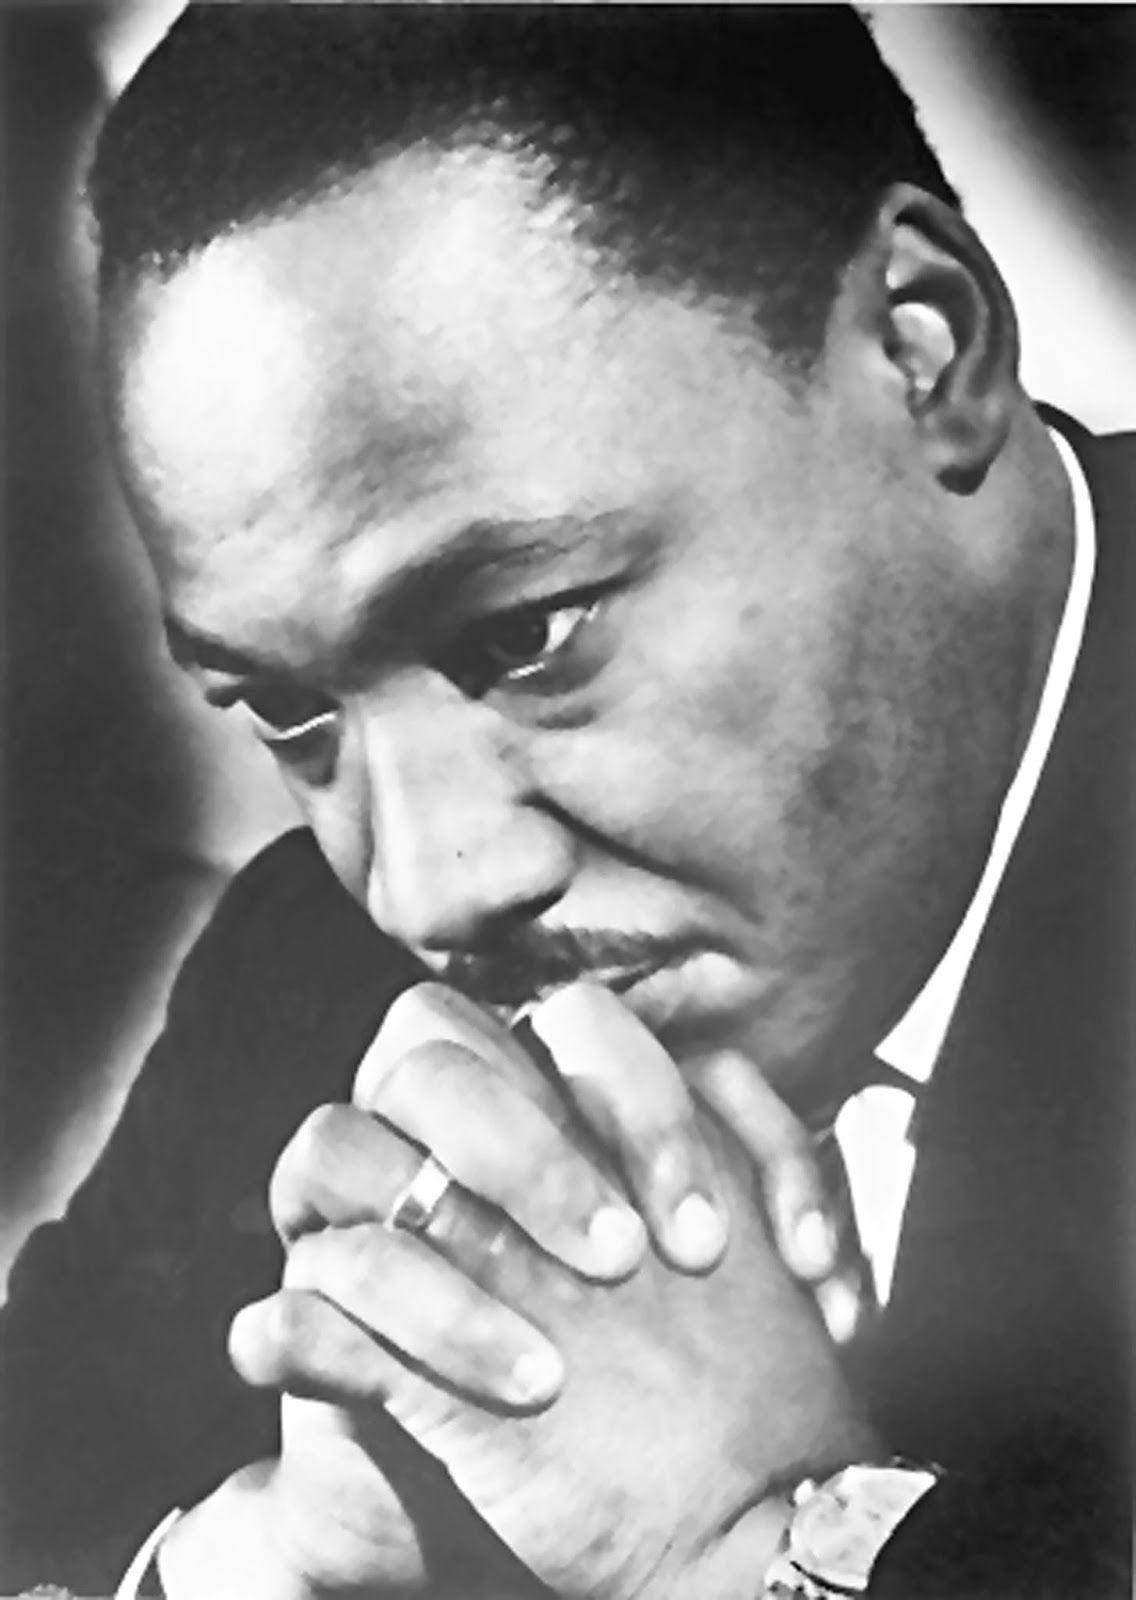 Martin Luther King, Jr. wallpapers – Celebrities- FPW